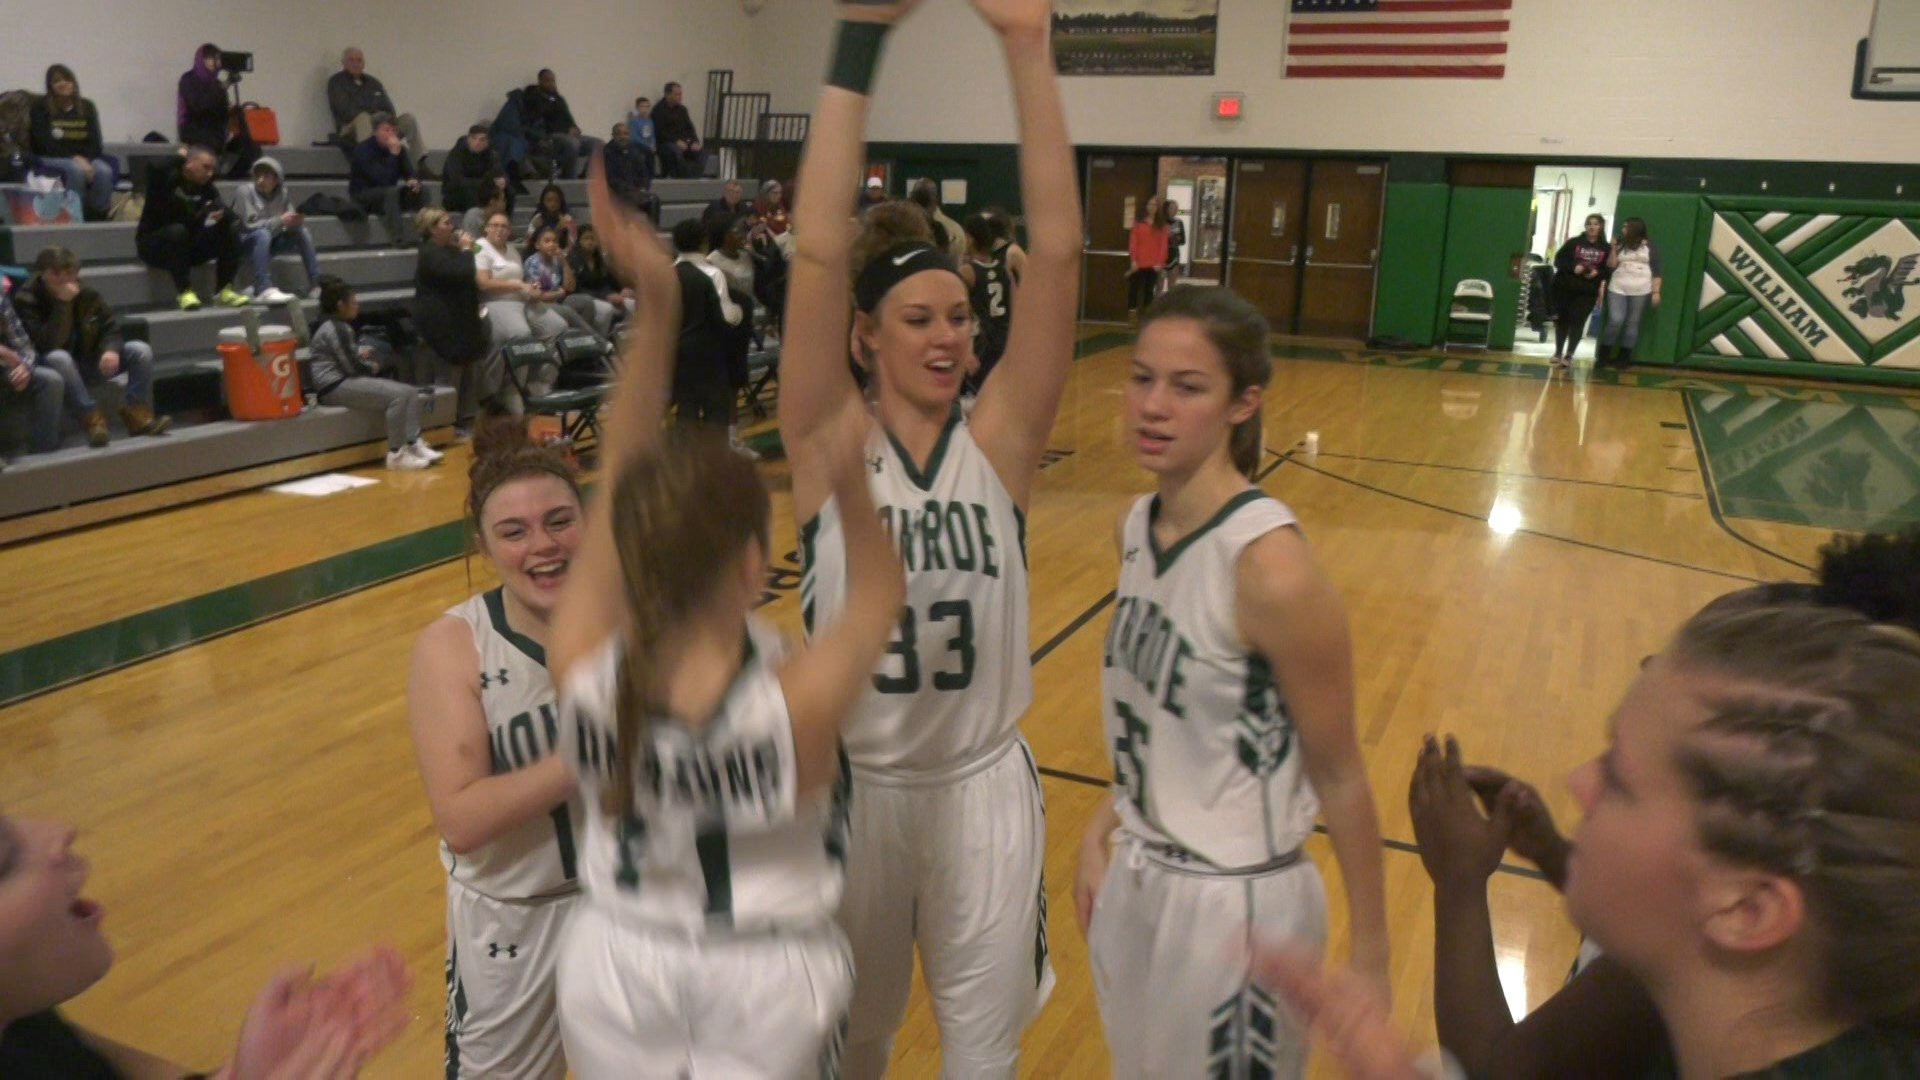 The William Monroe HS girls basketball team improves to 18-0